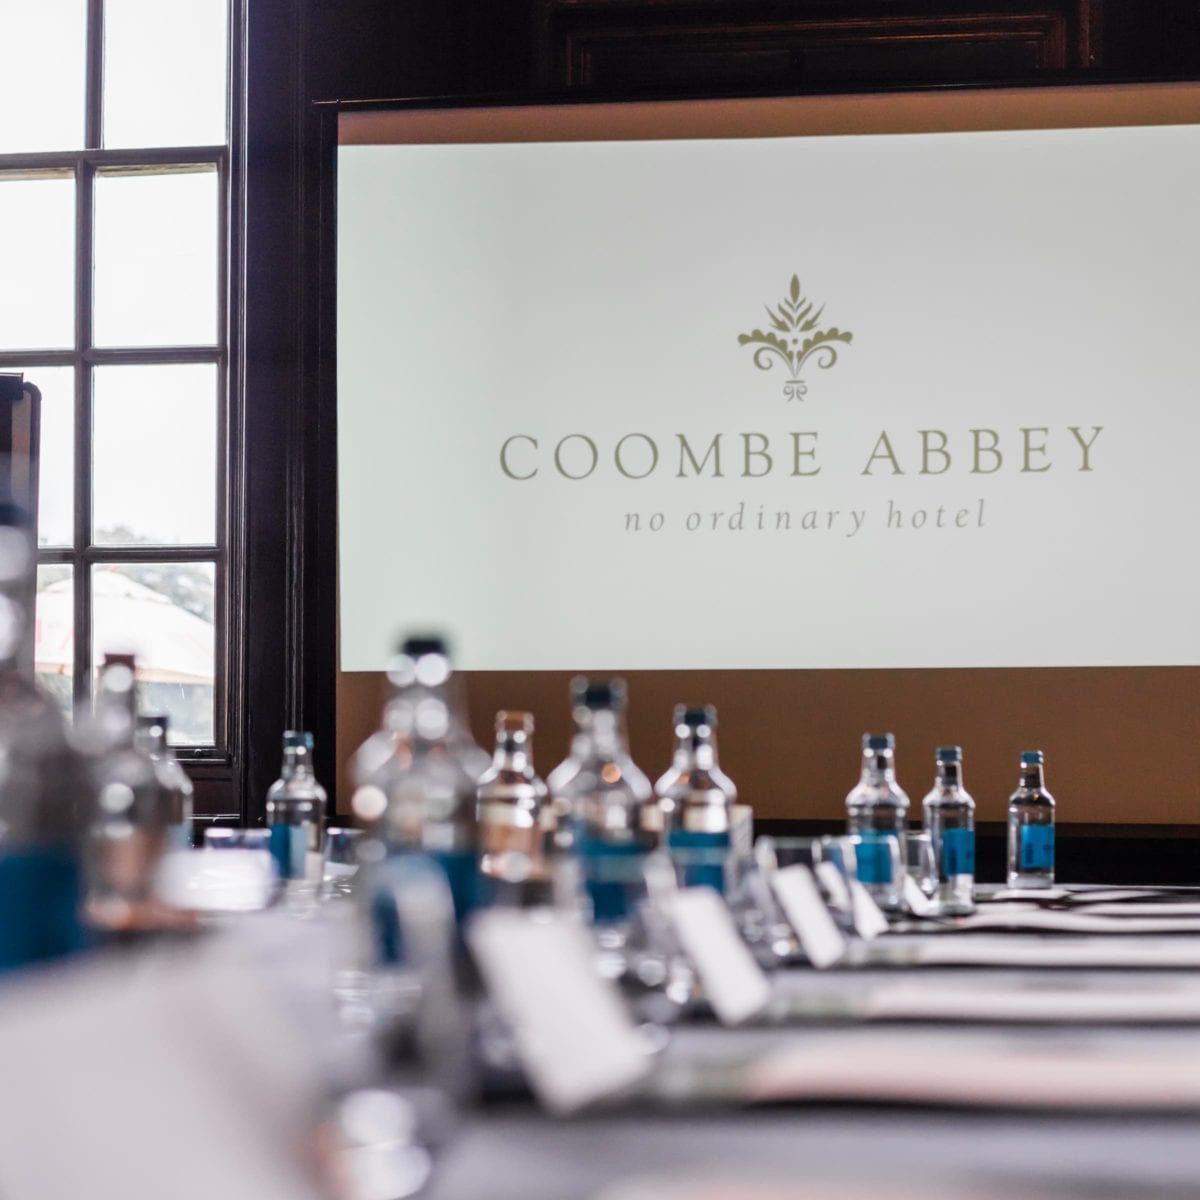 Team building days out at coombe abbey